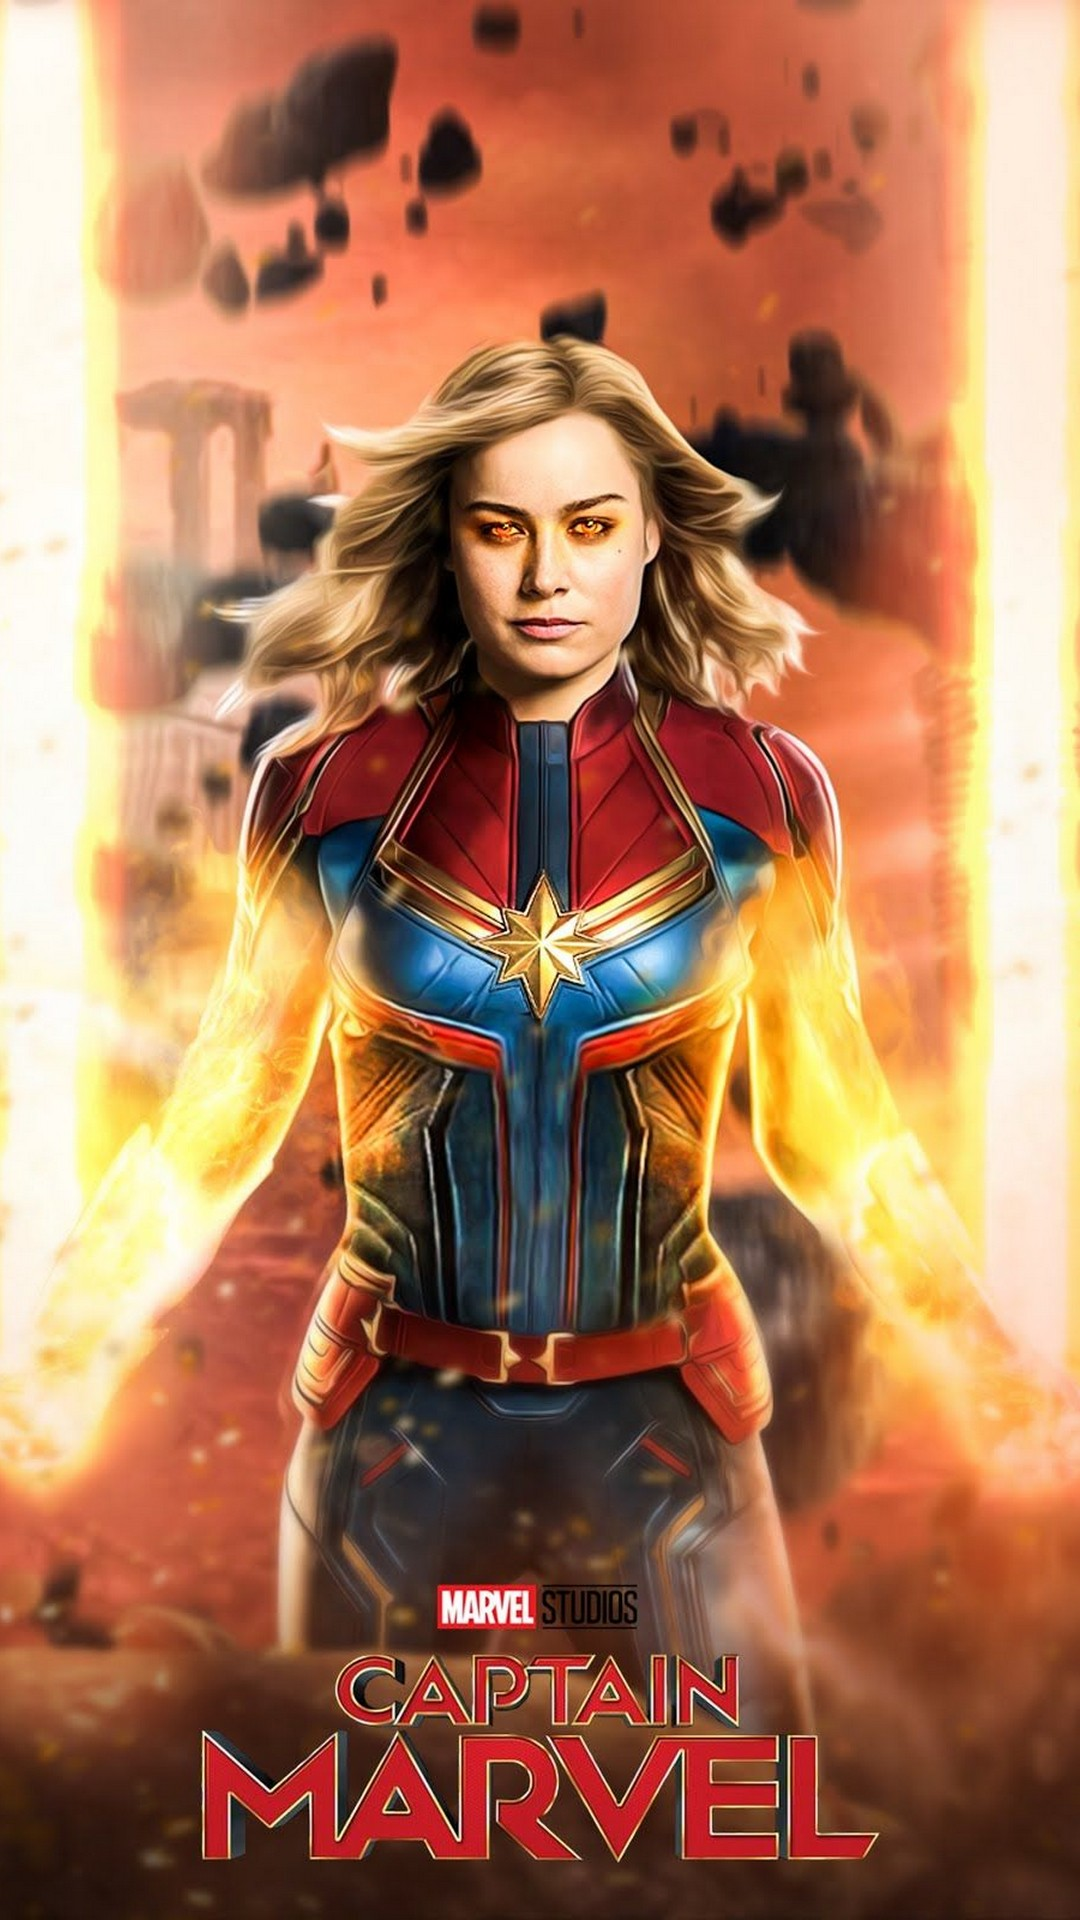 Captain Marvel 2019 Iphone 6 Wallpaper With High-resolution - 6 Captain Marvel 2019 , HD Wallpaper & Backgrounds